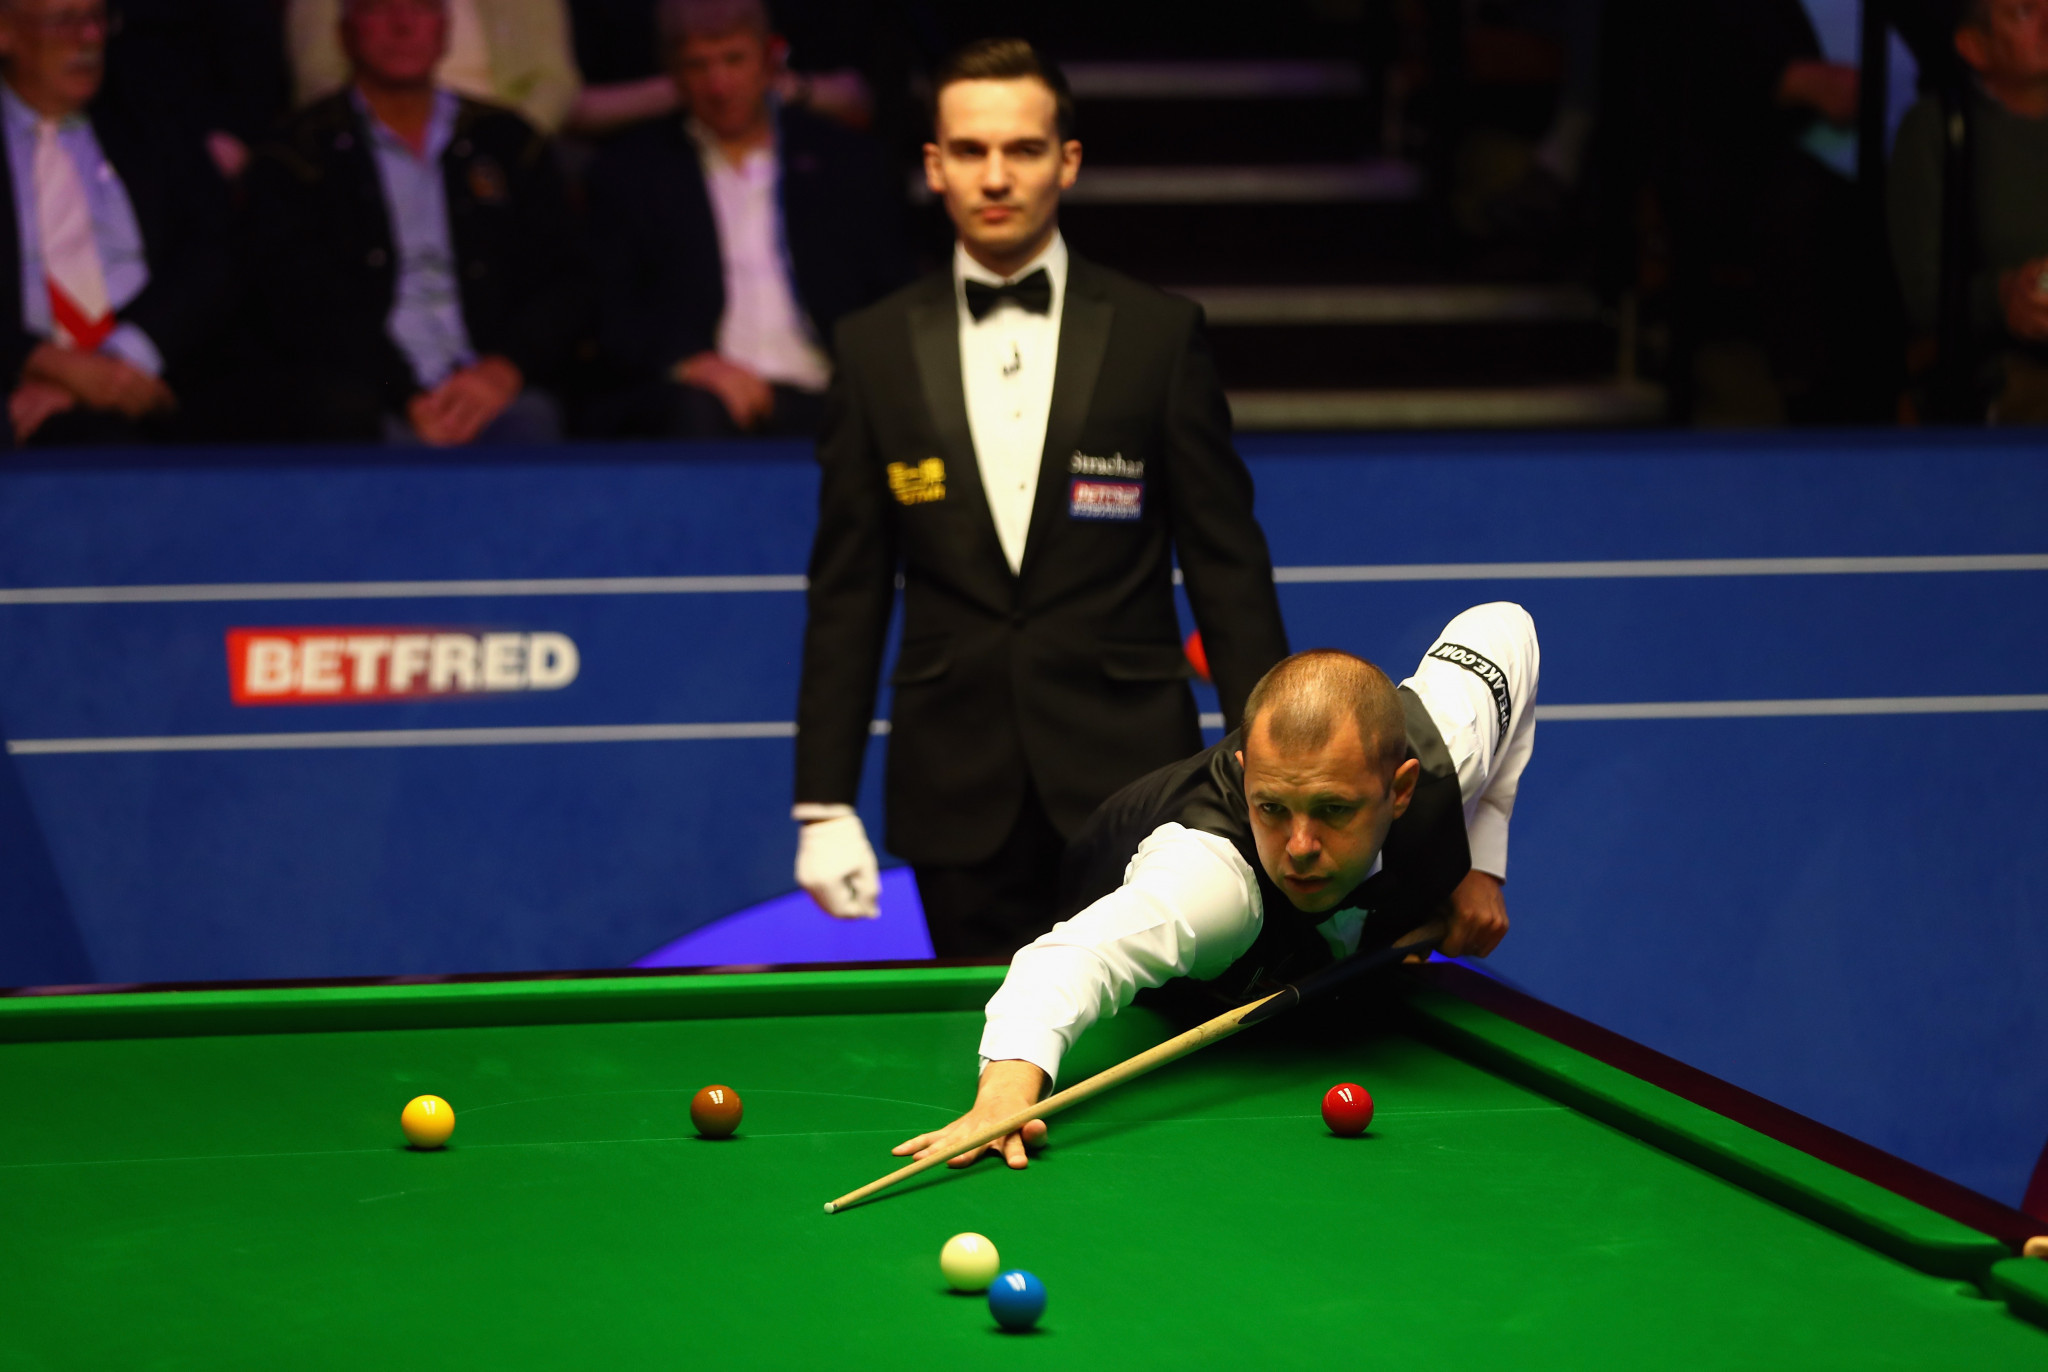 Hawkins defeats Ding to reach World Snooker Championship semi-finals